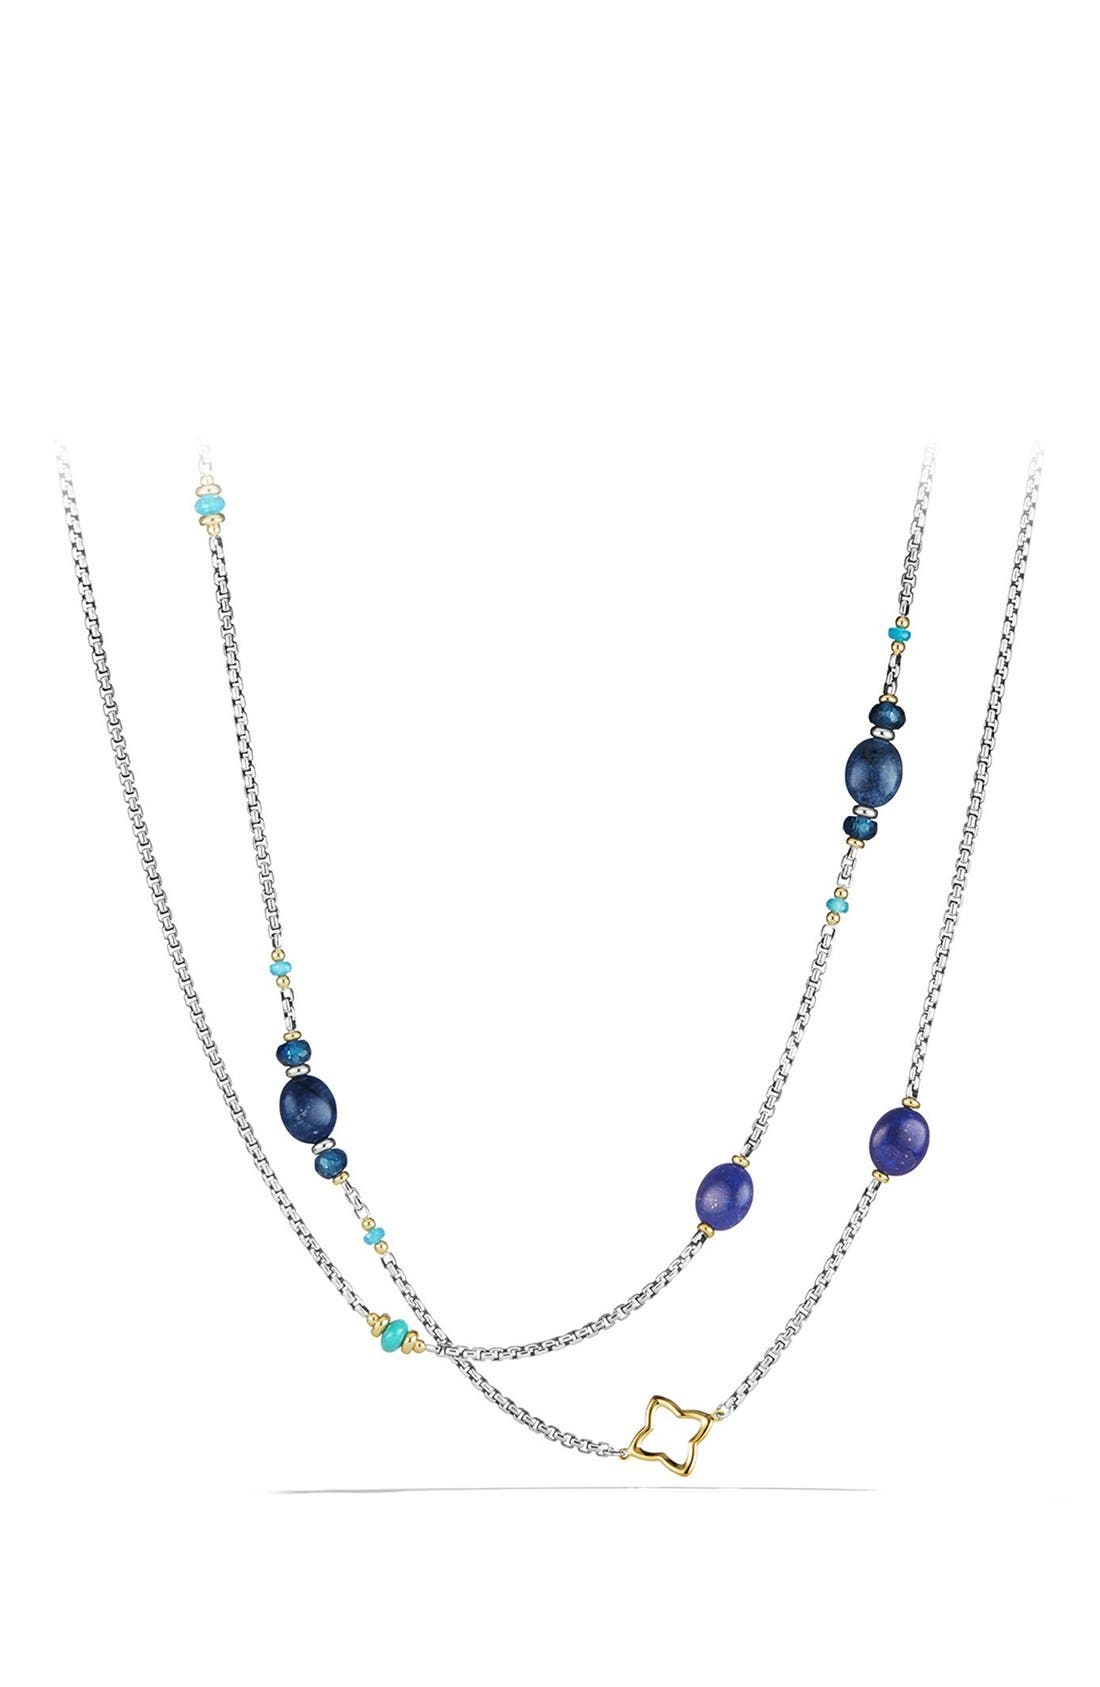 DAVID YURMAN 'Bead and Chain' Necklace, Main, color, SILVER/ GOLD/ TURQUOISE